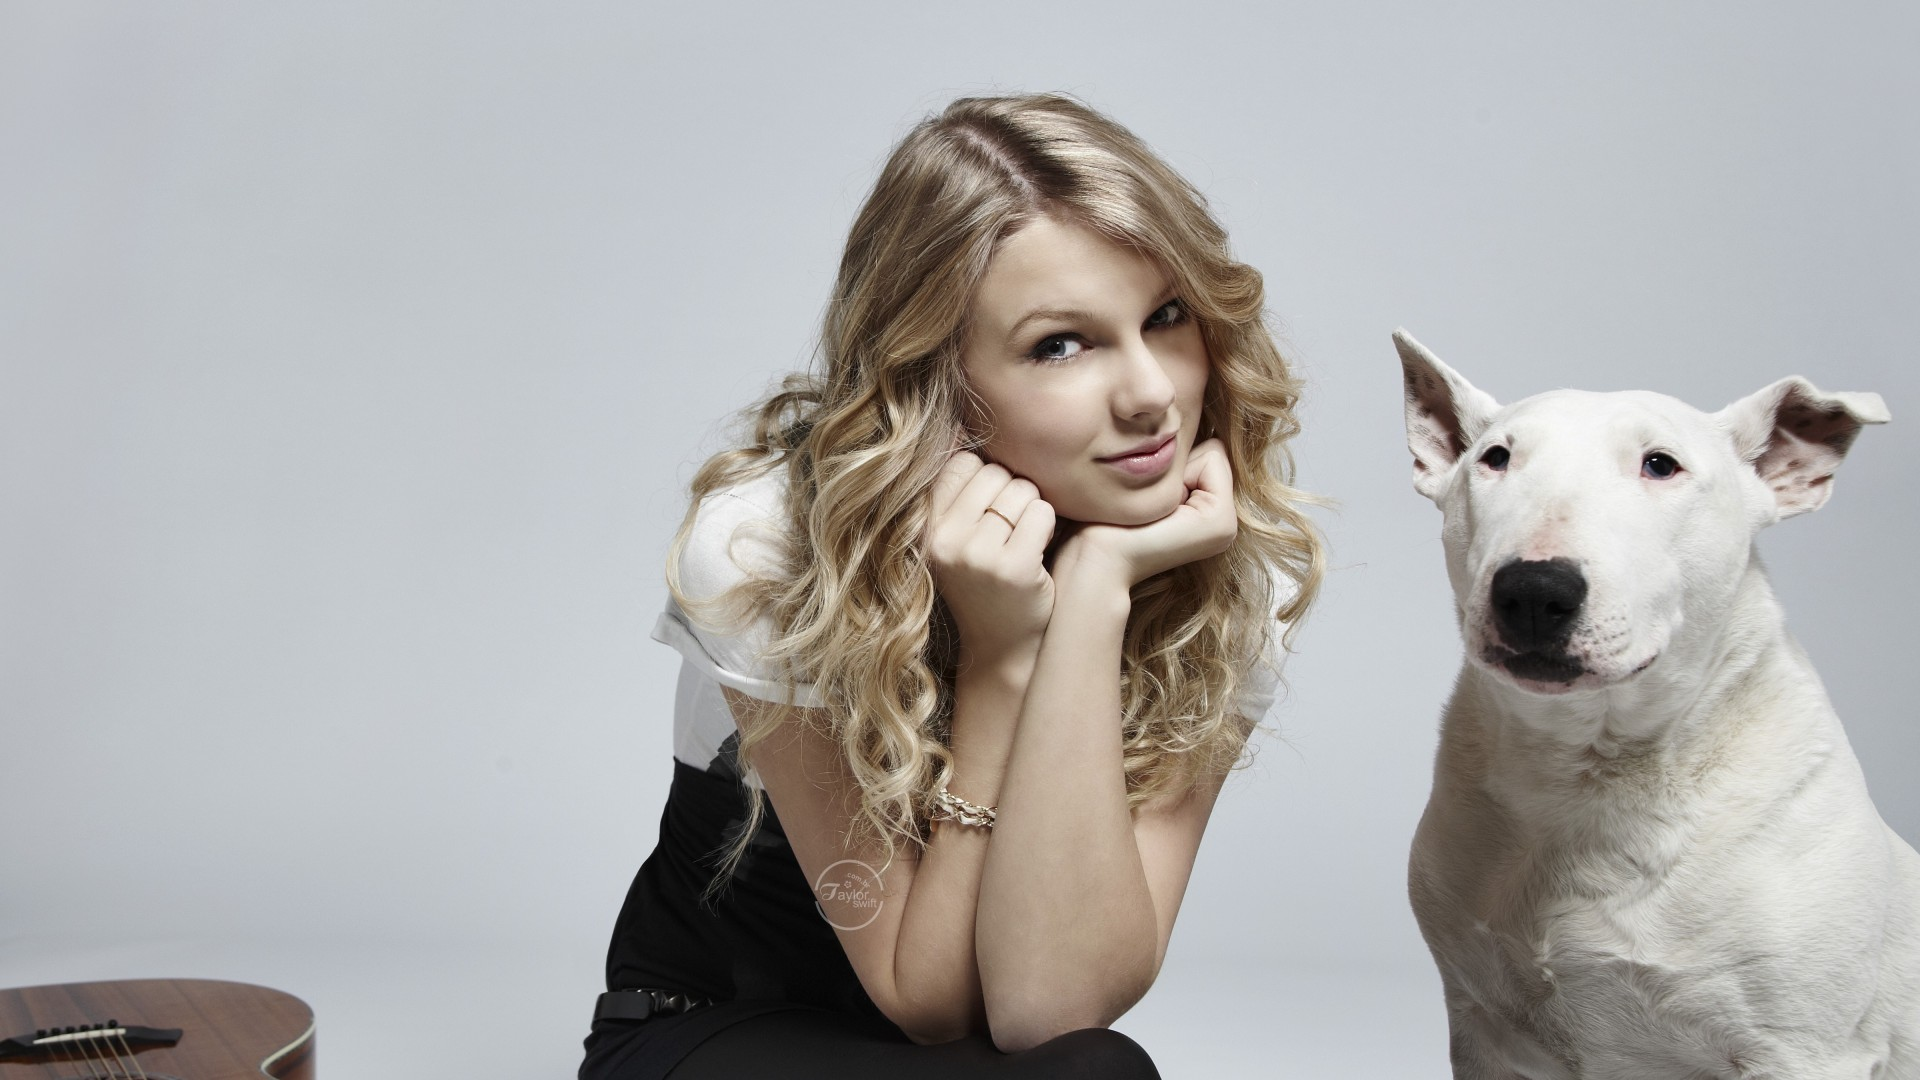 Taylor Swift Beautiful HD Wallpaper